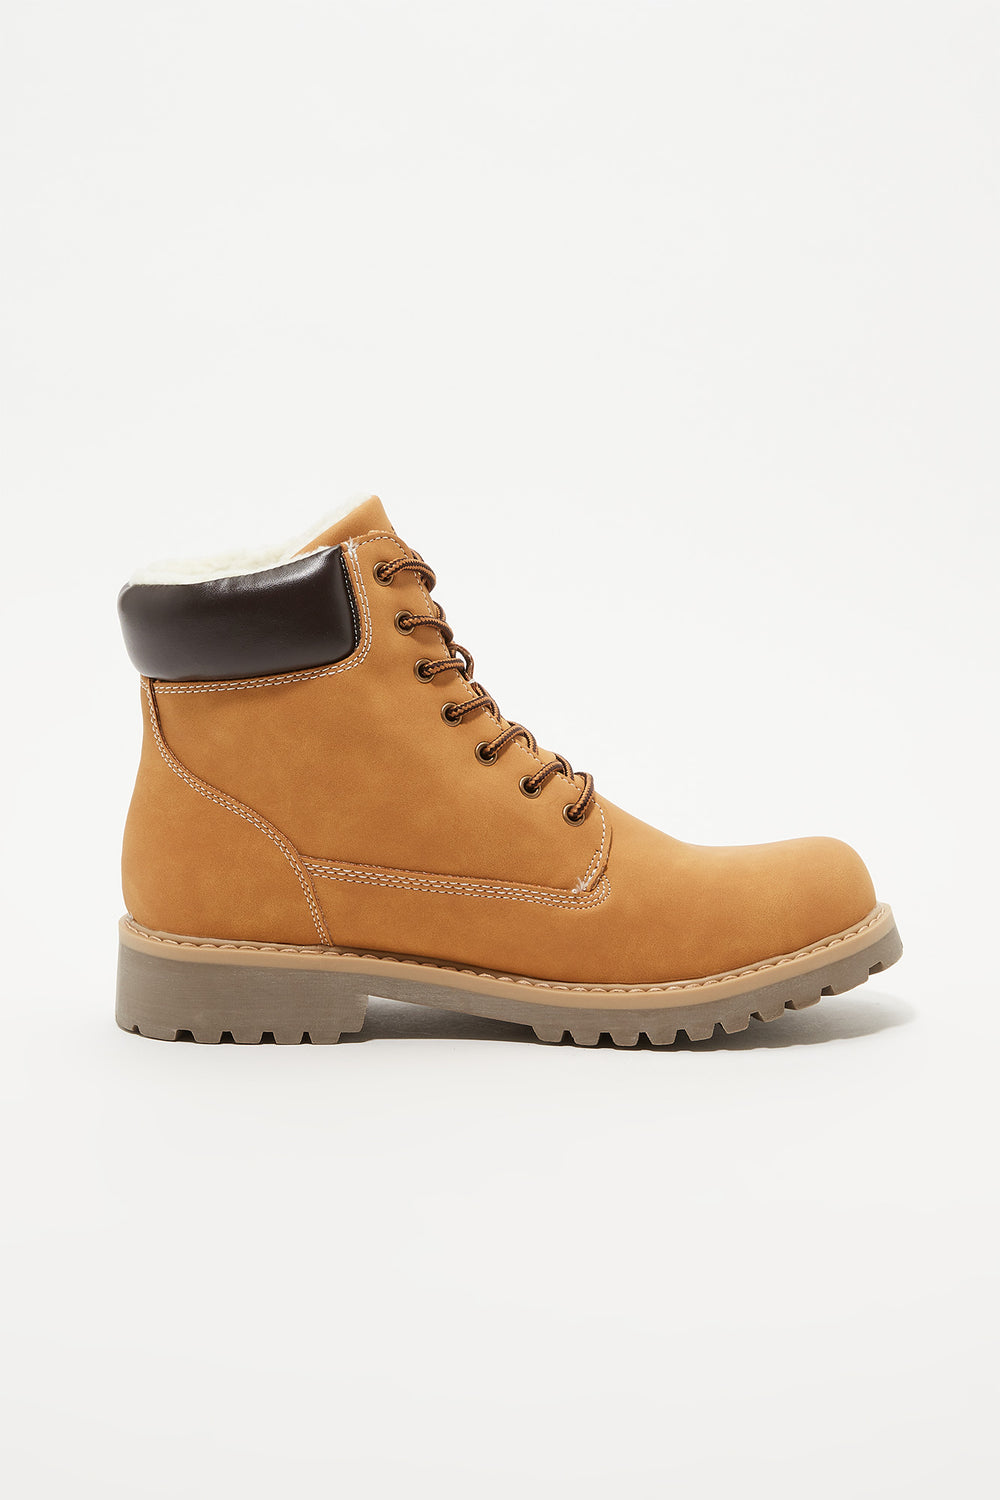 Storm Mountain Mens Faux-Fur Hiker Boots Tan